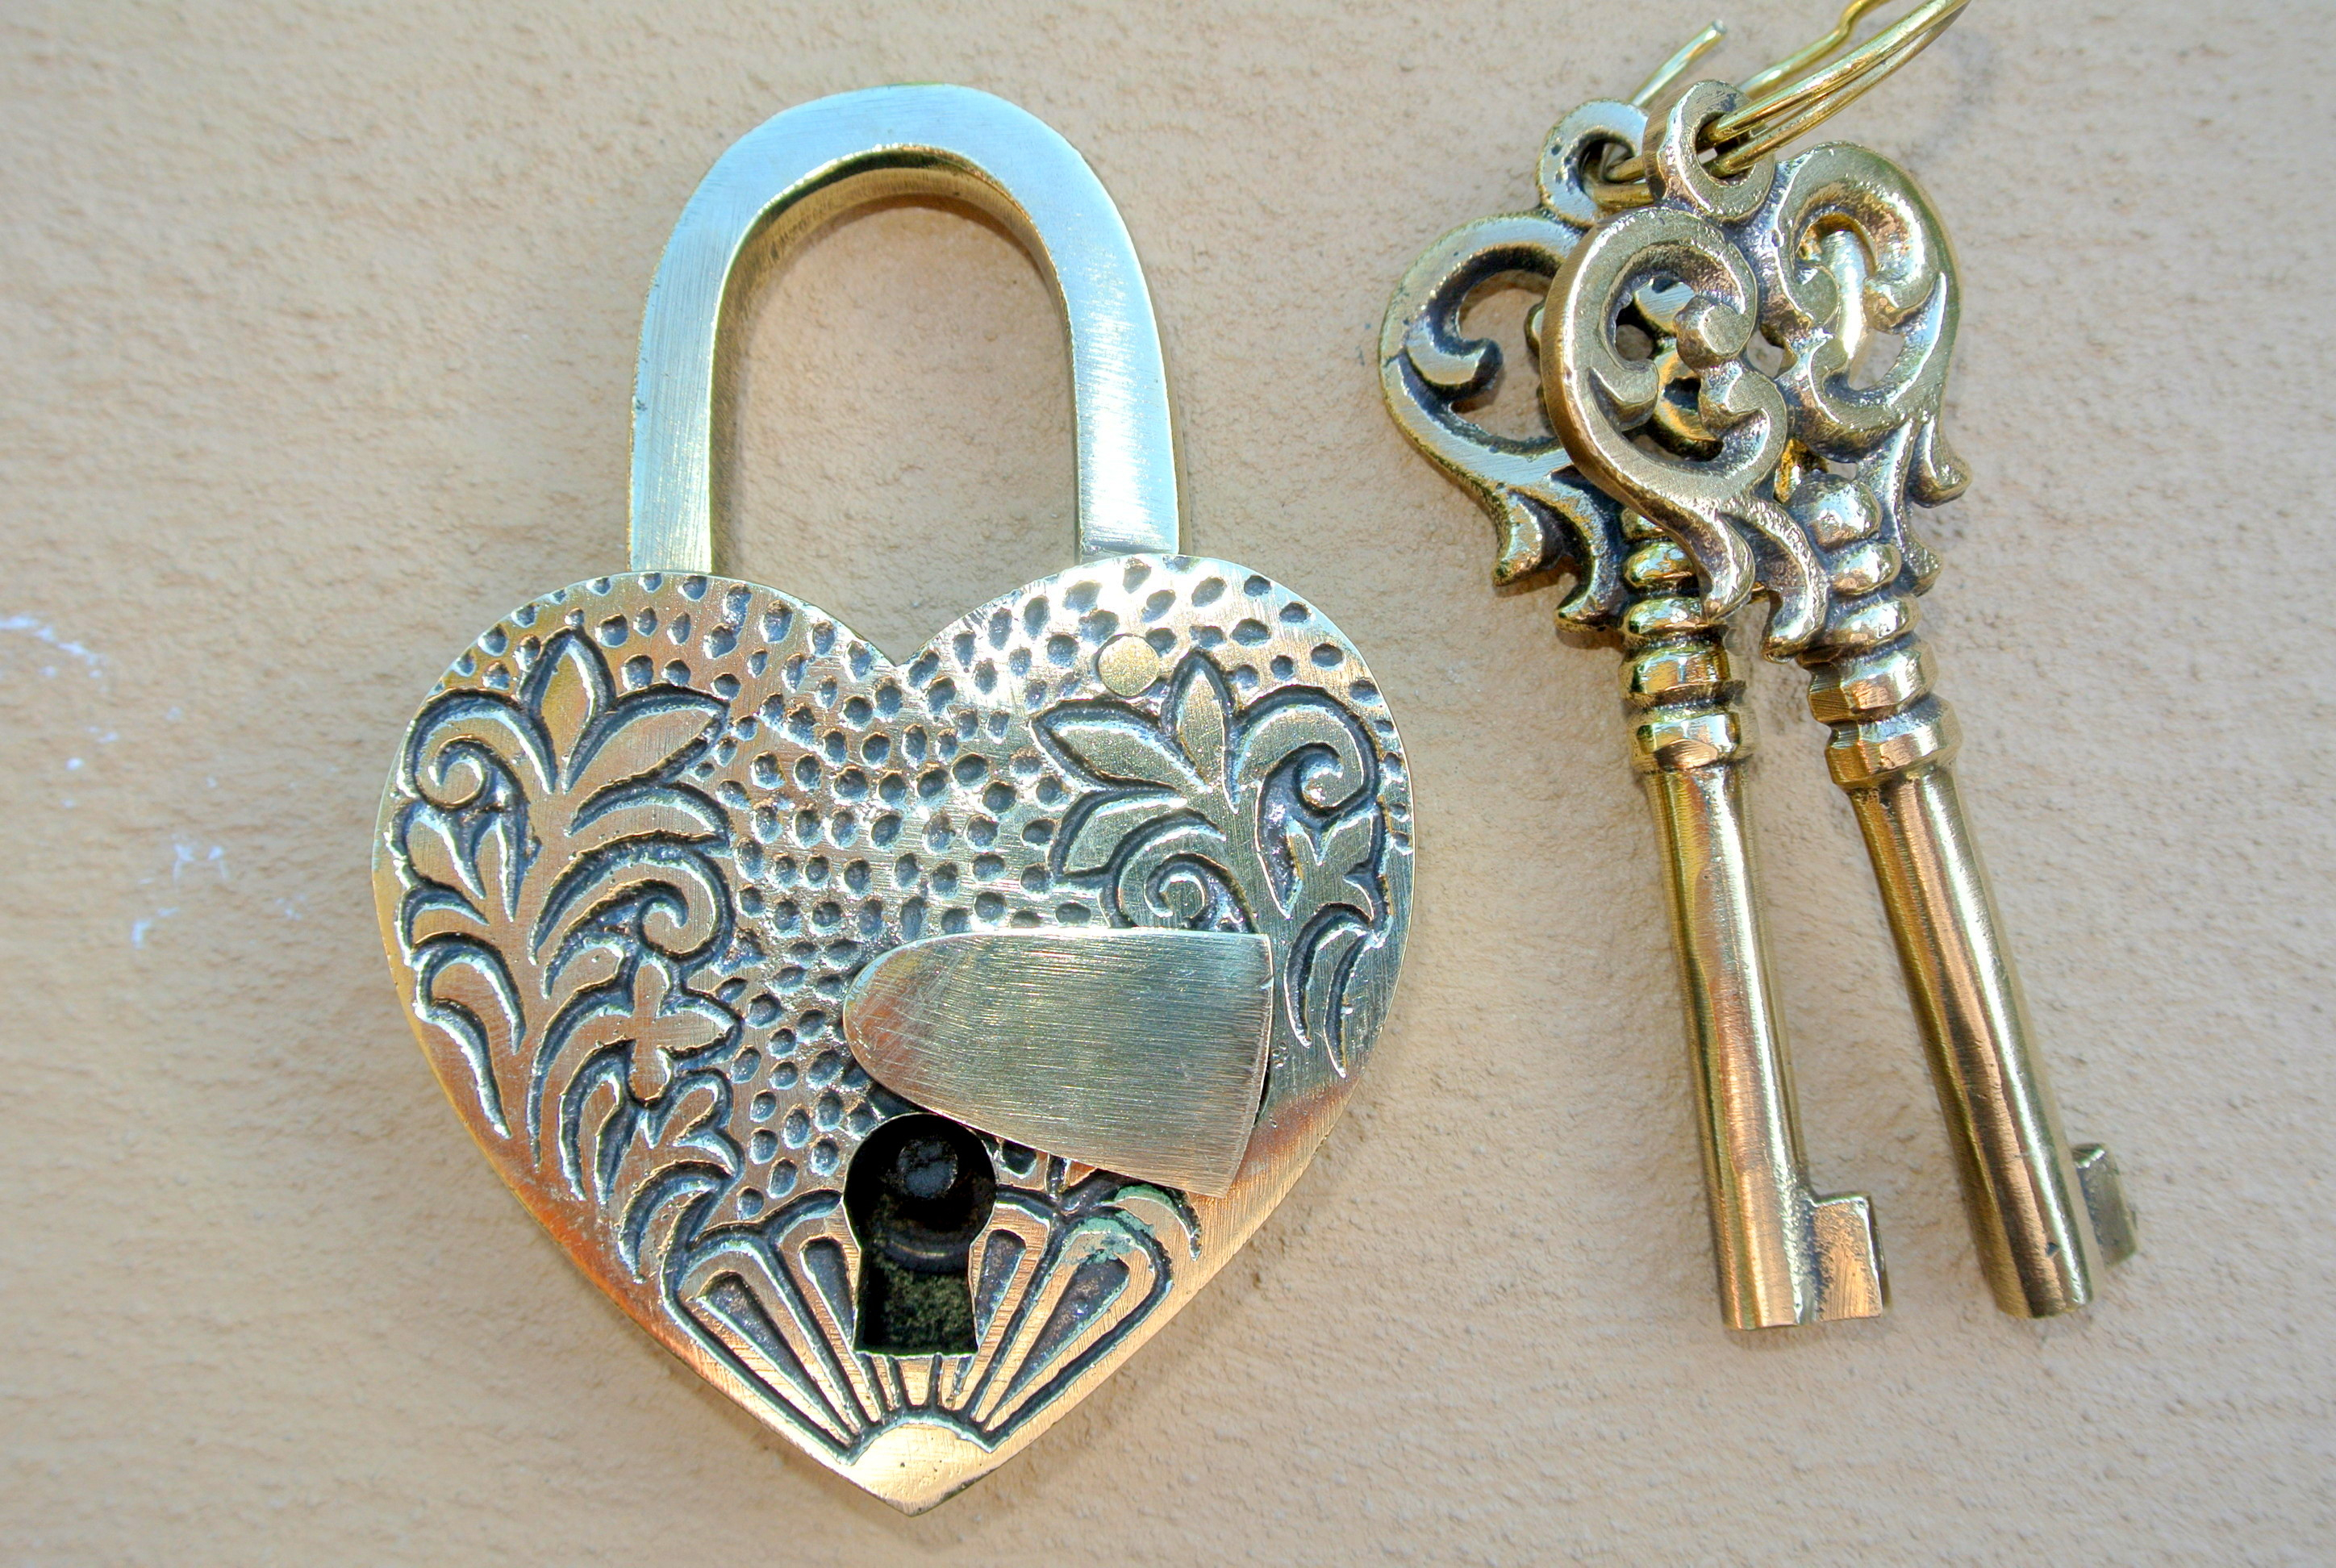 """Embossed 3"""" Vintage Style Antique """"heart Love Padlock """" Shape Solid Brass 2 Keys Heavy Lock Works Polished Pertaining To Current Heart Shaped Padlock Rings (View 18 of 25)"""